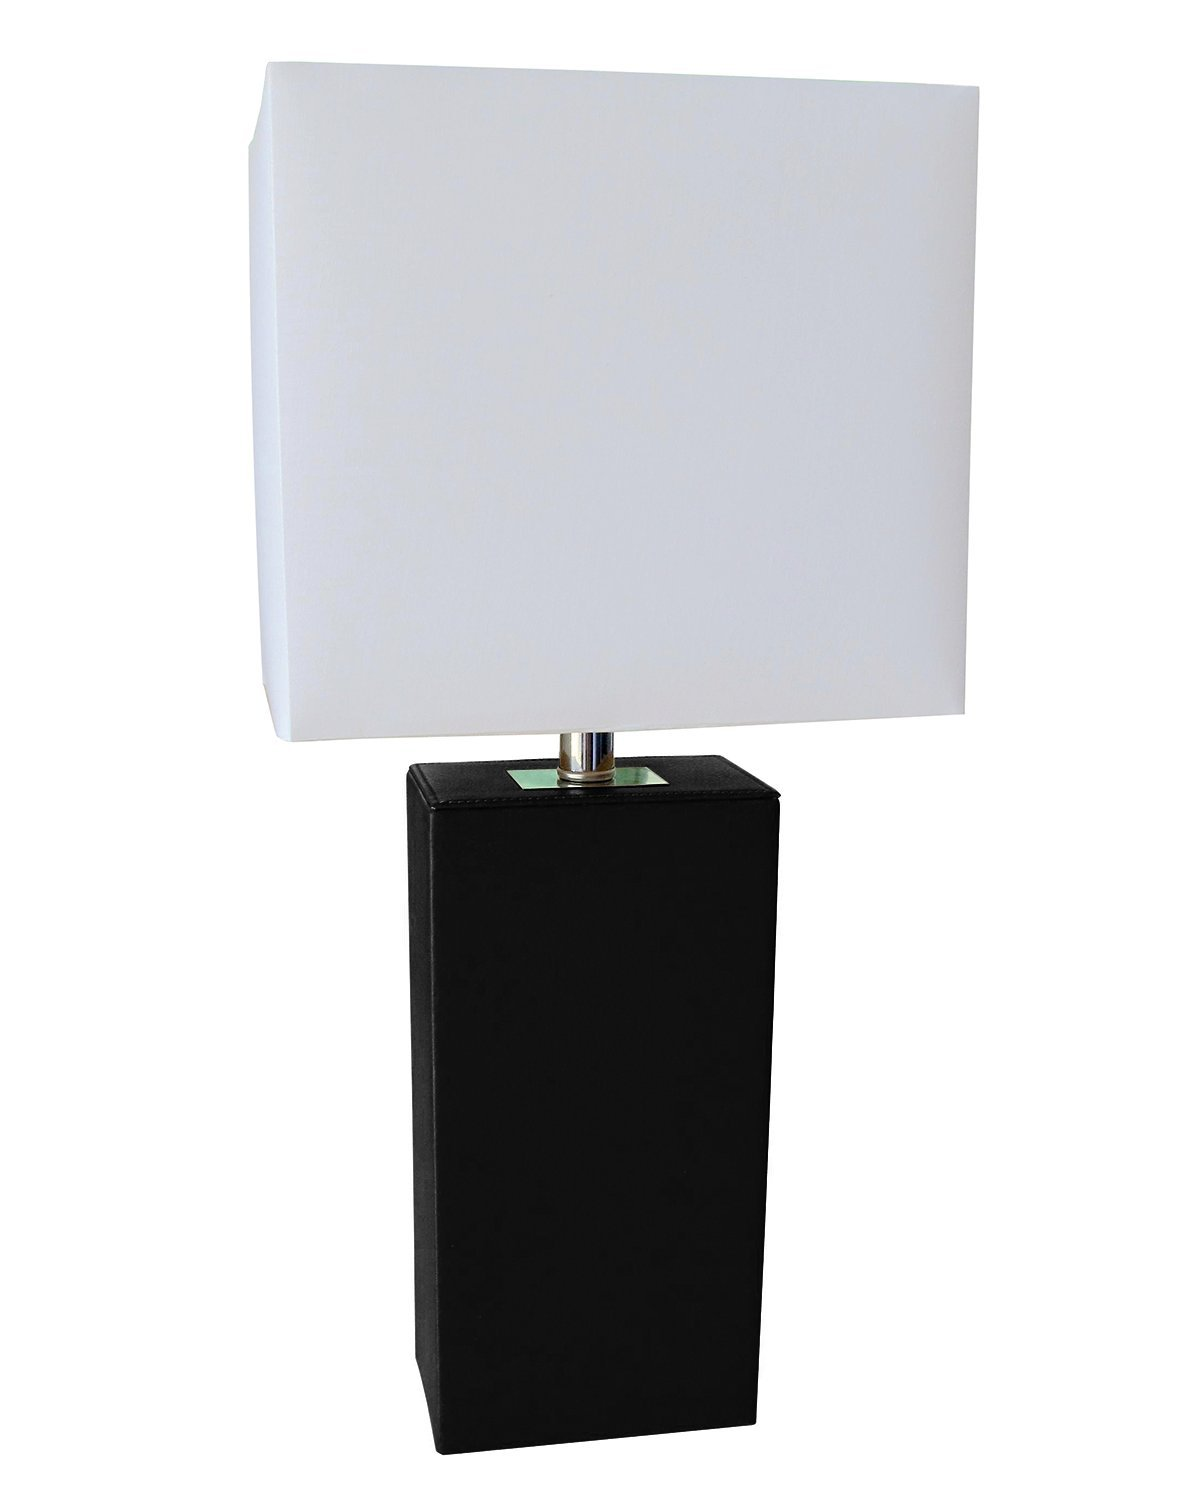 rectangular, modern table lamp, black leather base, white lampshade